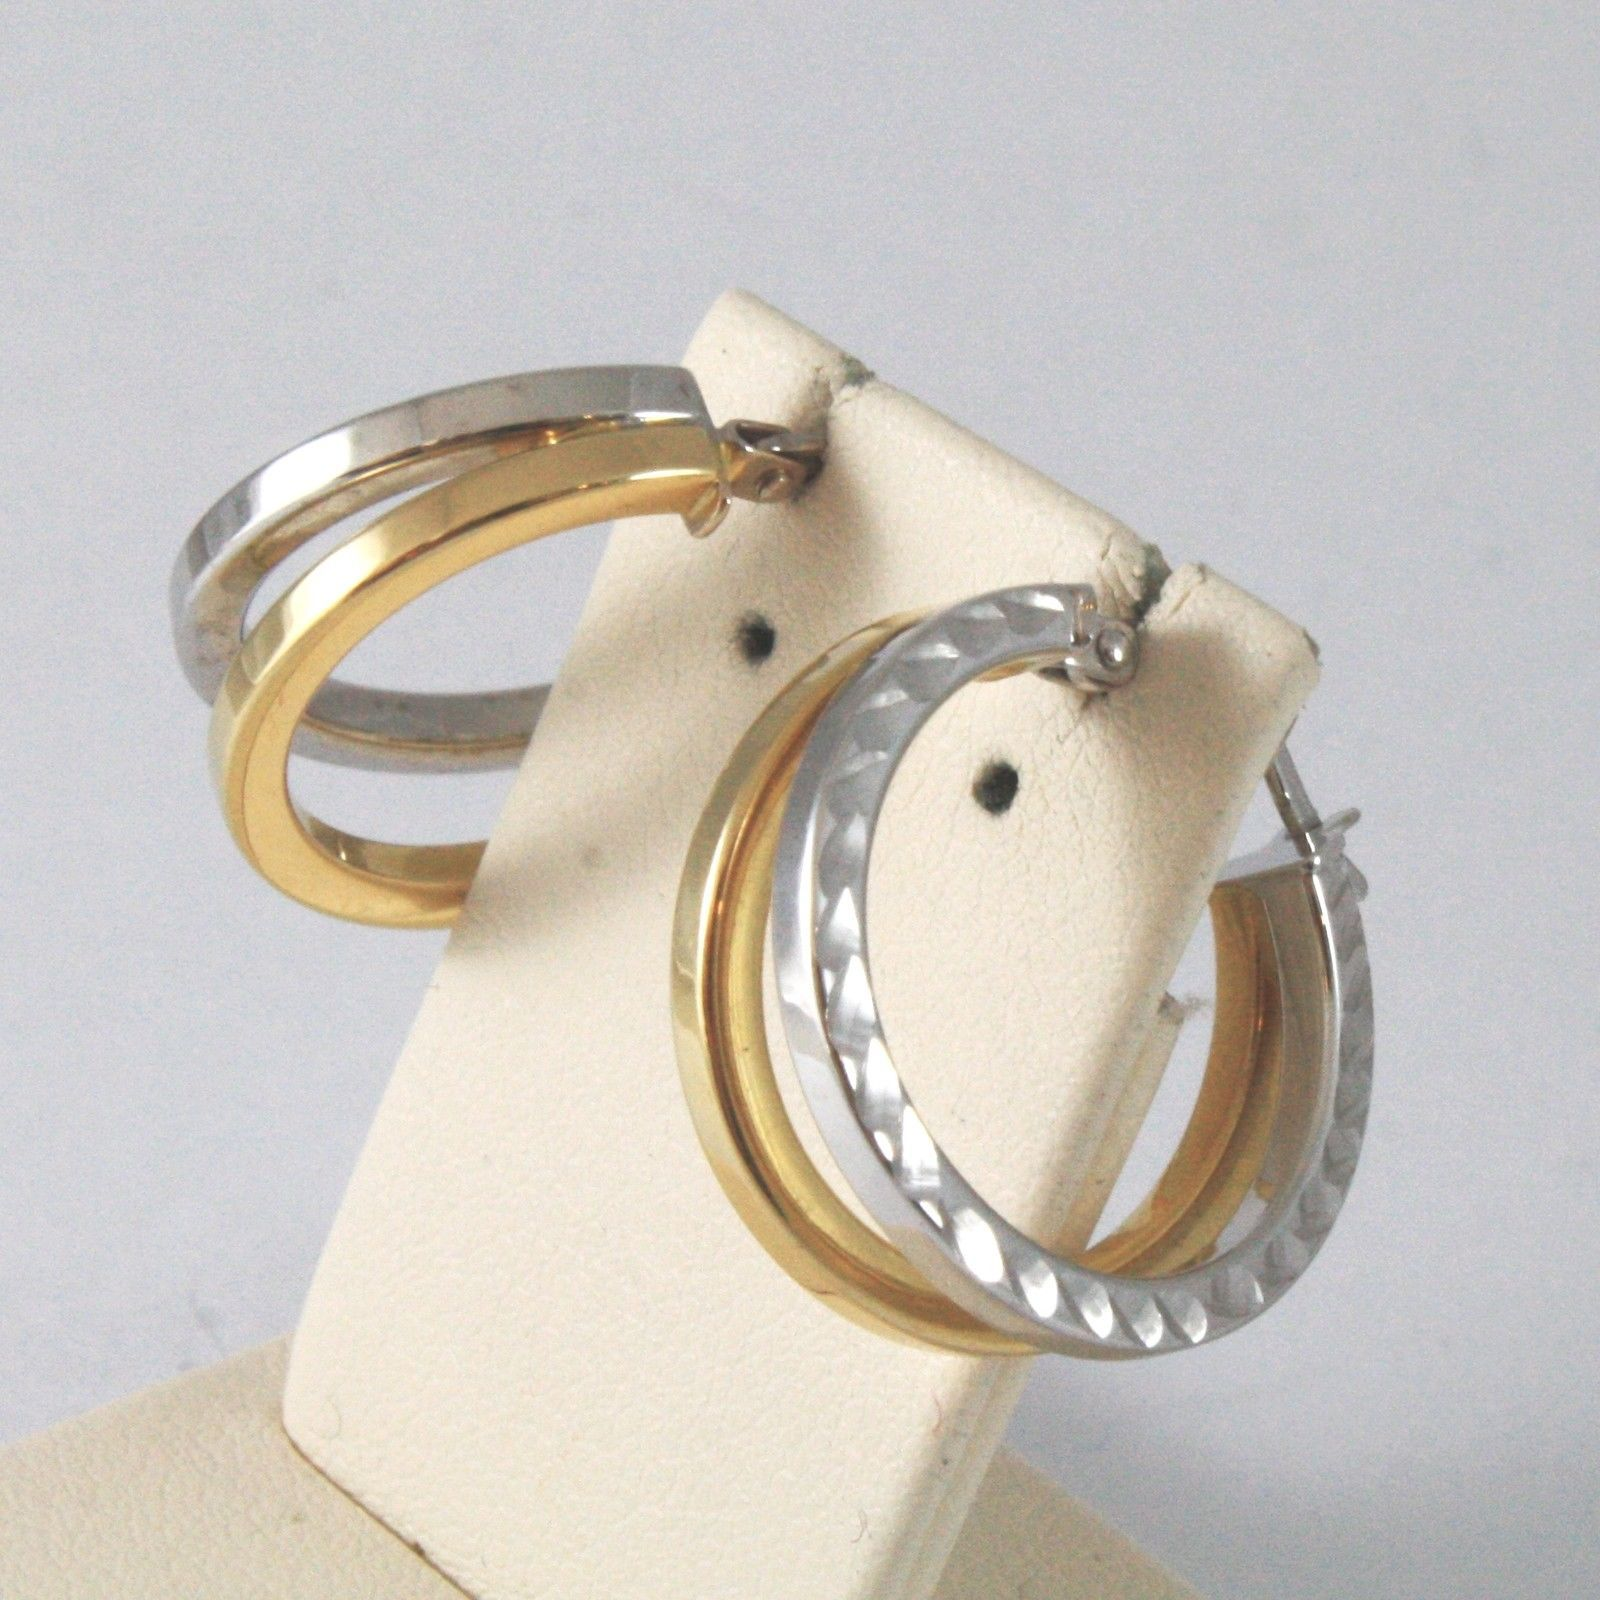 18K SOLID YELLOW AND WHITE GOLD EARRINGS WITH DOUBLE WORKED CIRCLES